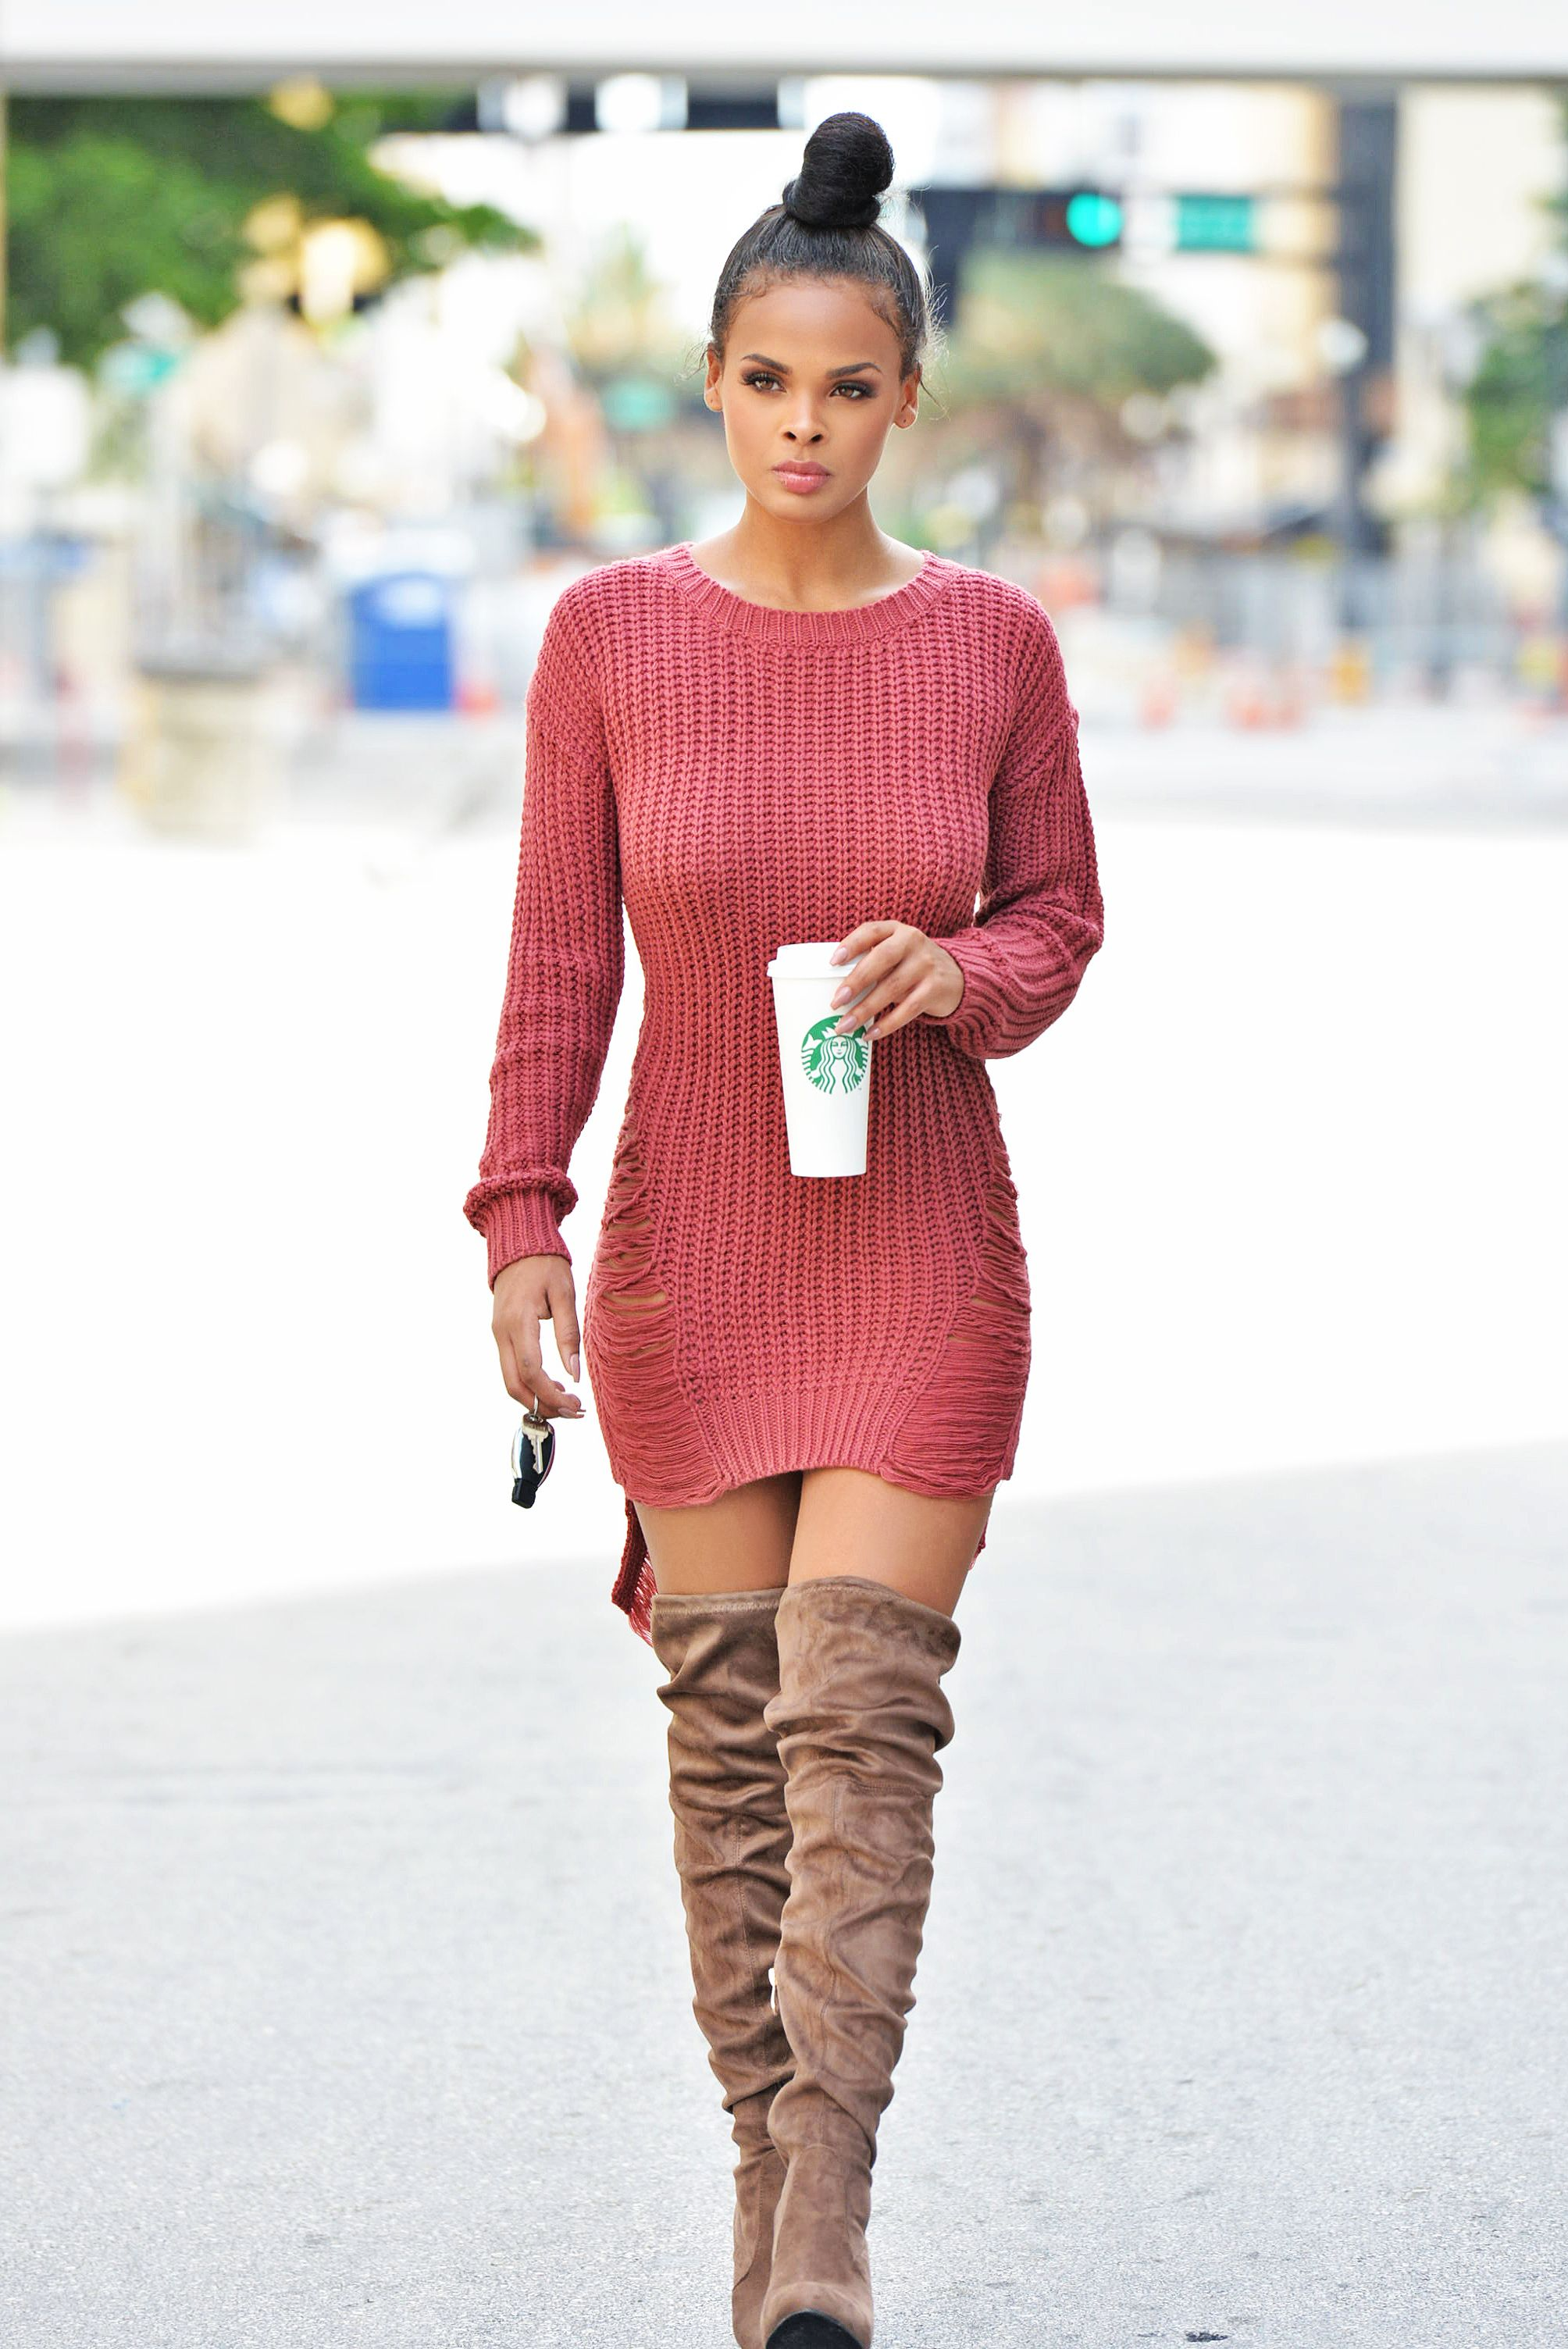 43cfac2f41b8 Sweater dress with boots | Everything Fashion | Fashion, Dress with ...